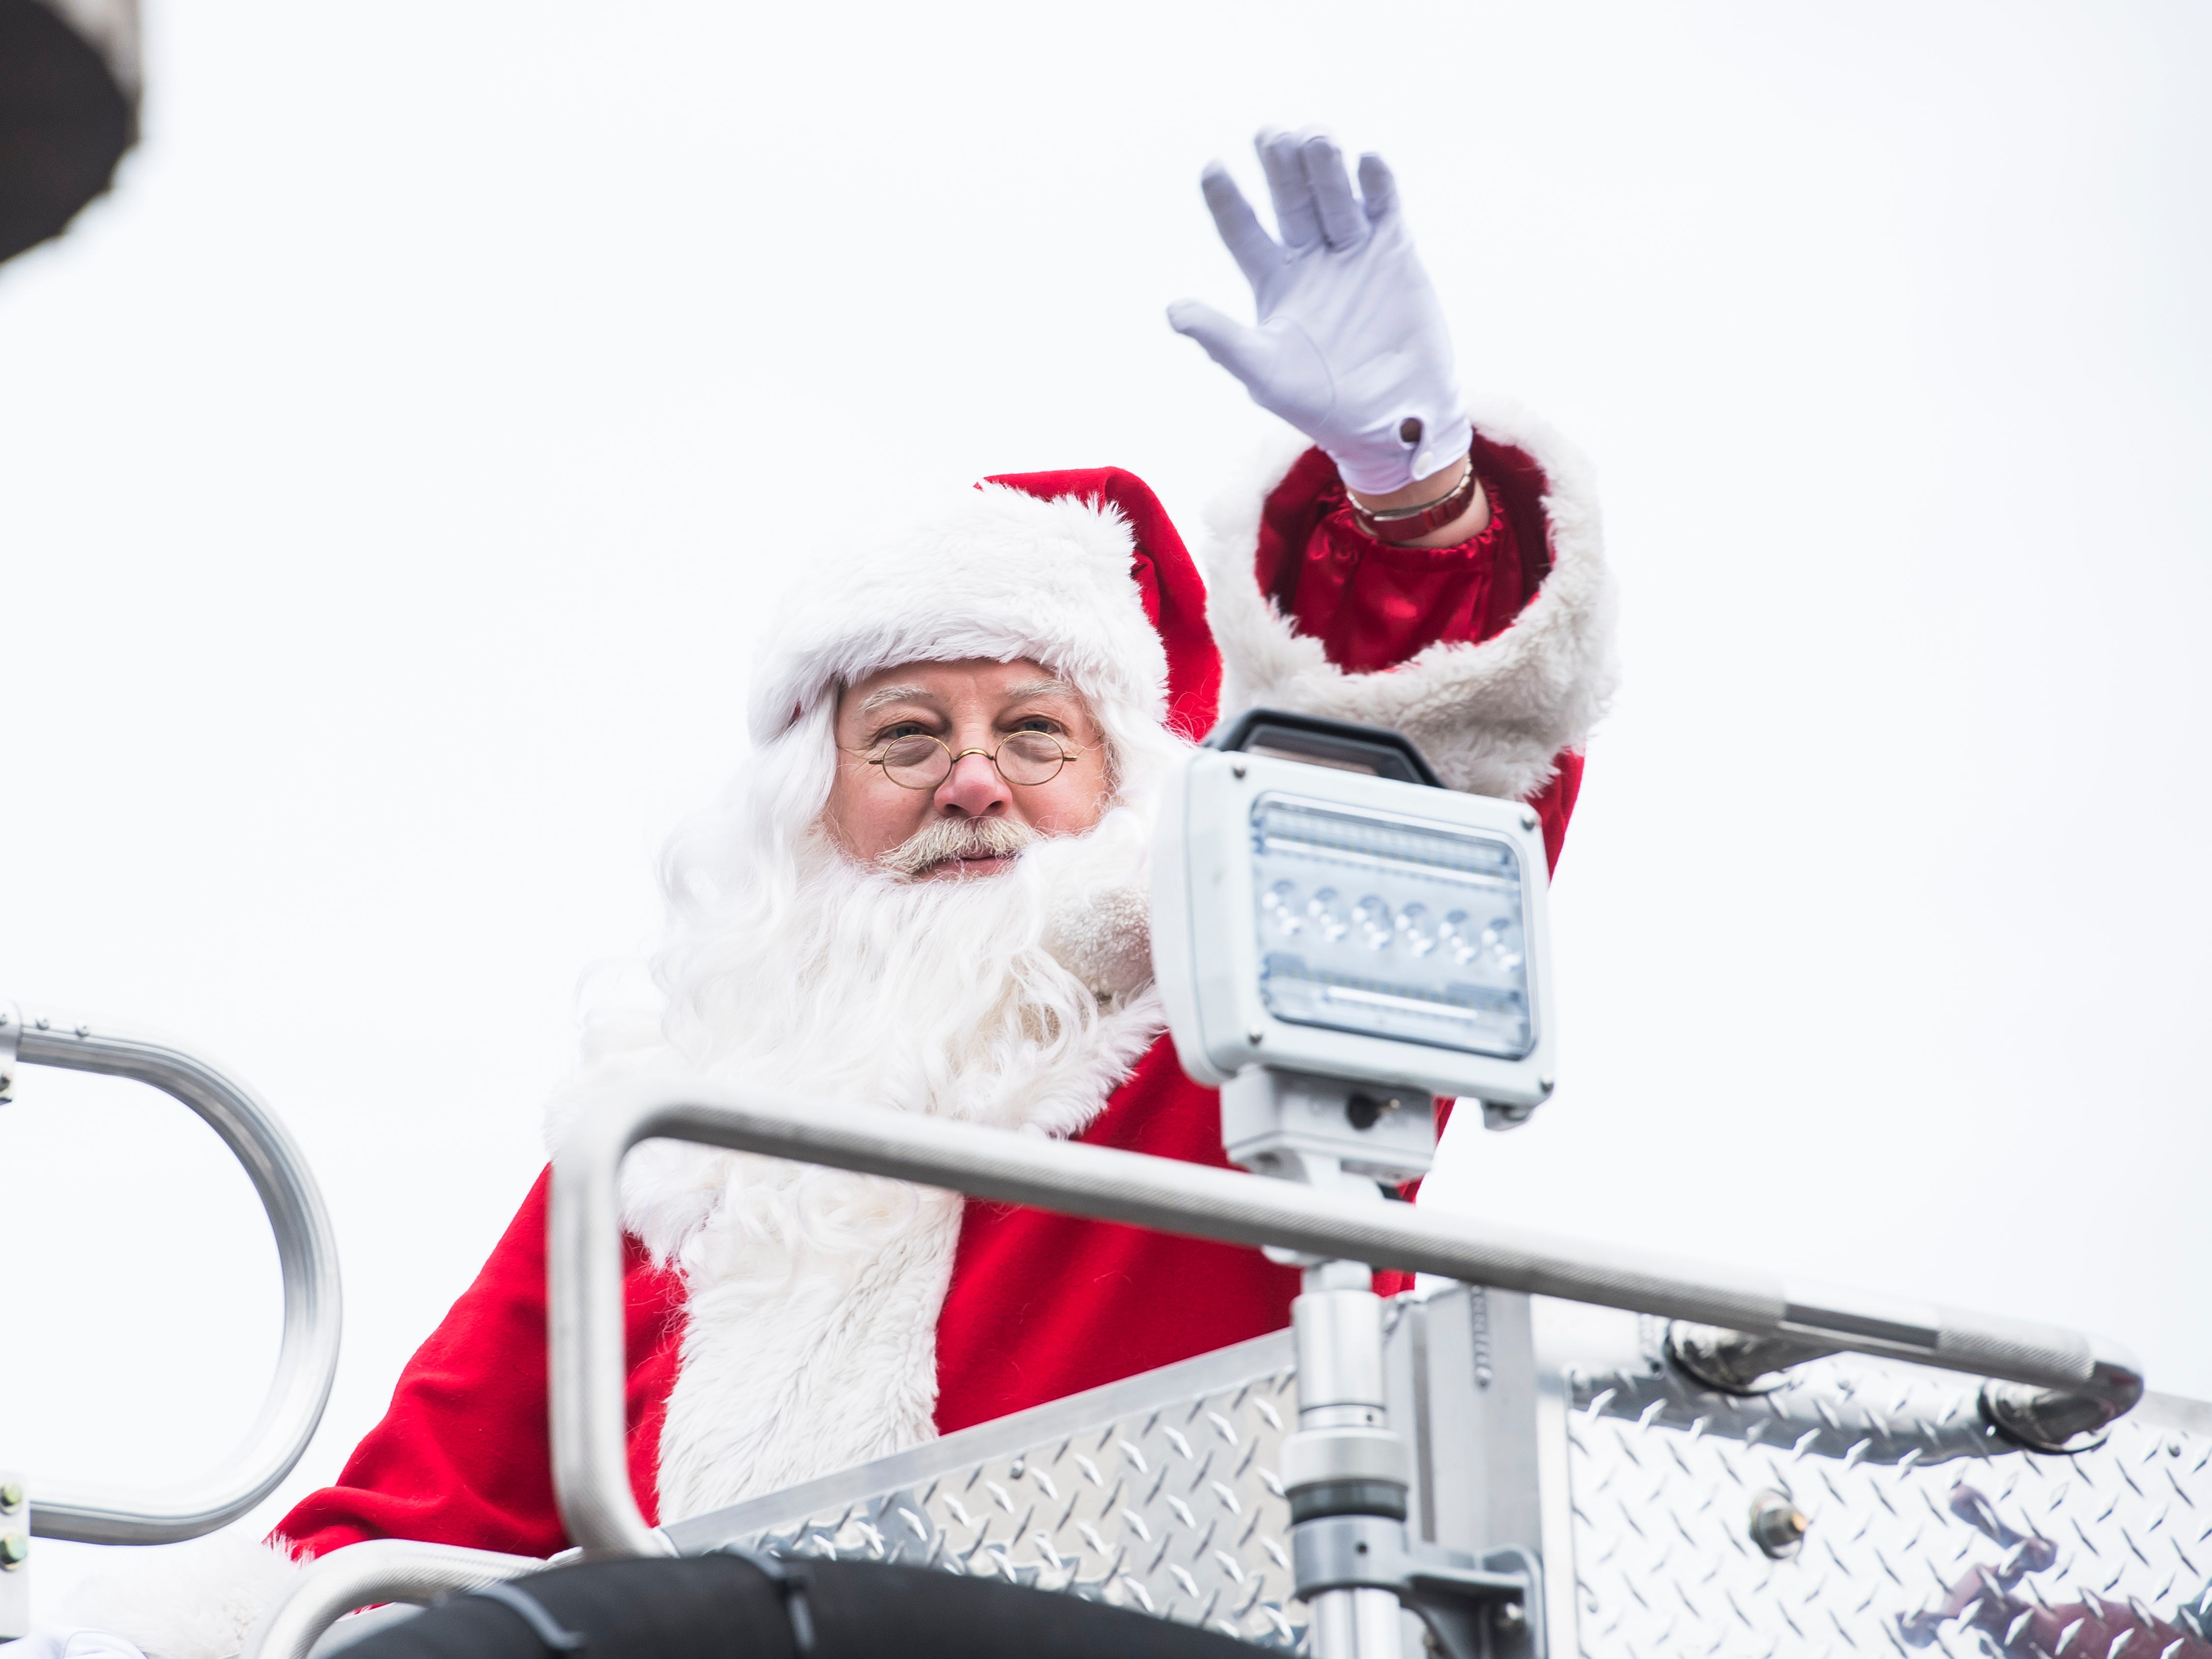 Santa waves to the crowd during the annual Hanover Christmas parade on Friday, November, 23, 2018.